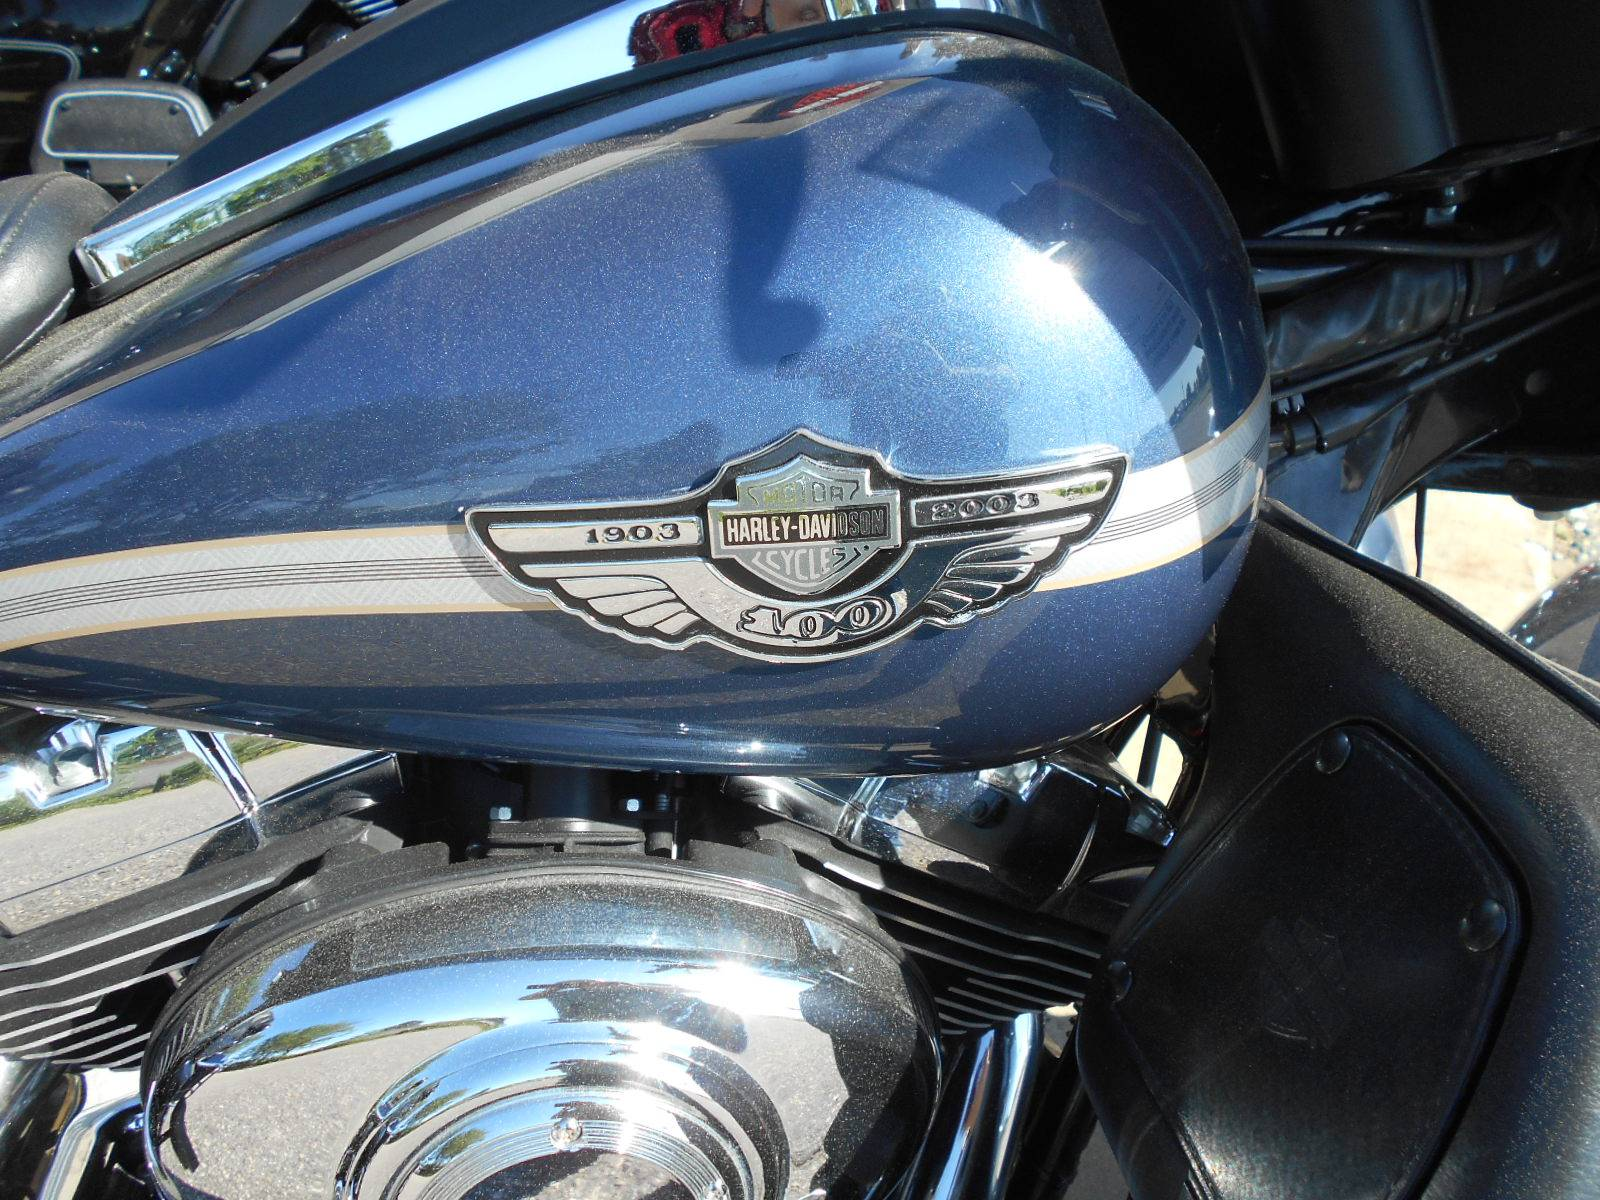 2003 Harley-Davidson FLHTCUI Ultra Classic® Electra Glide® in Mauston, Wisconsin - Photo 2